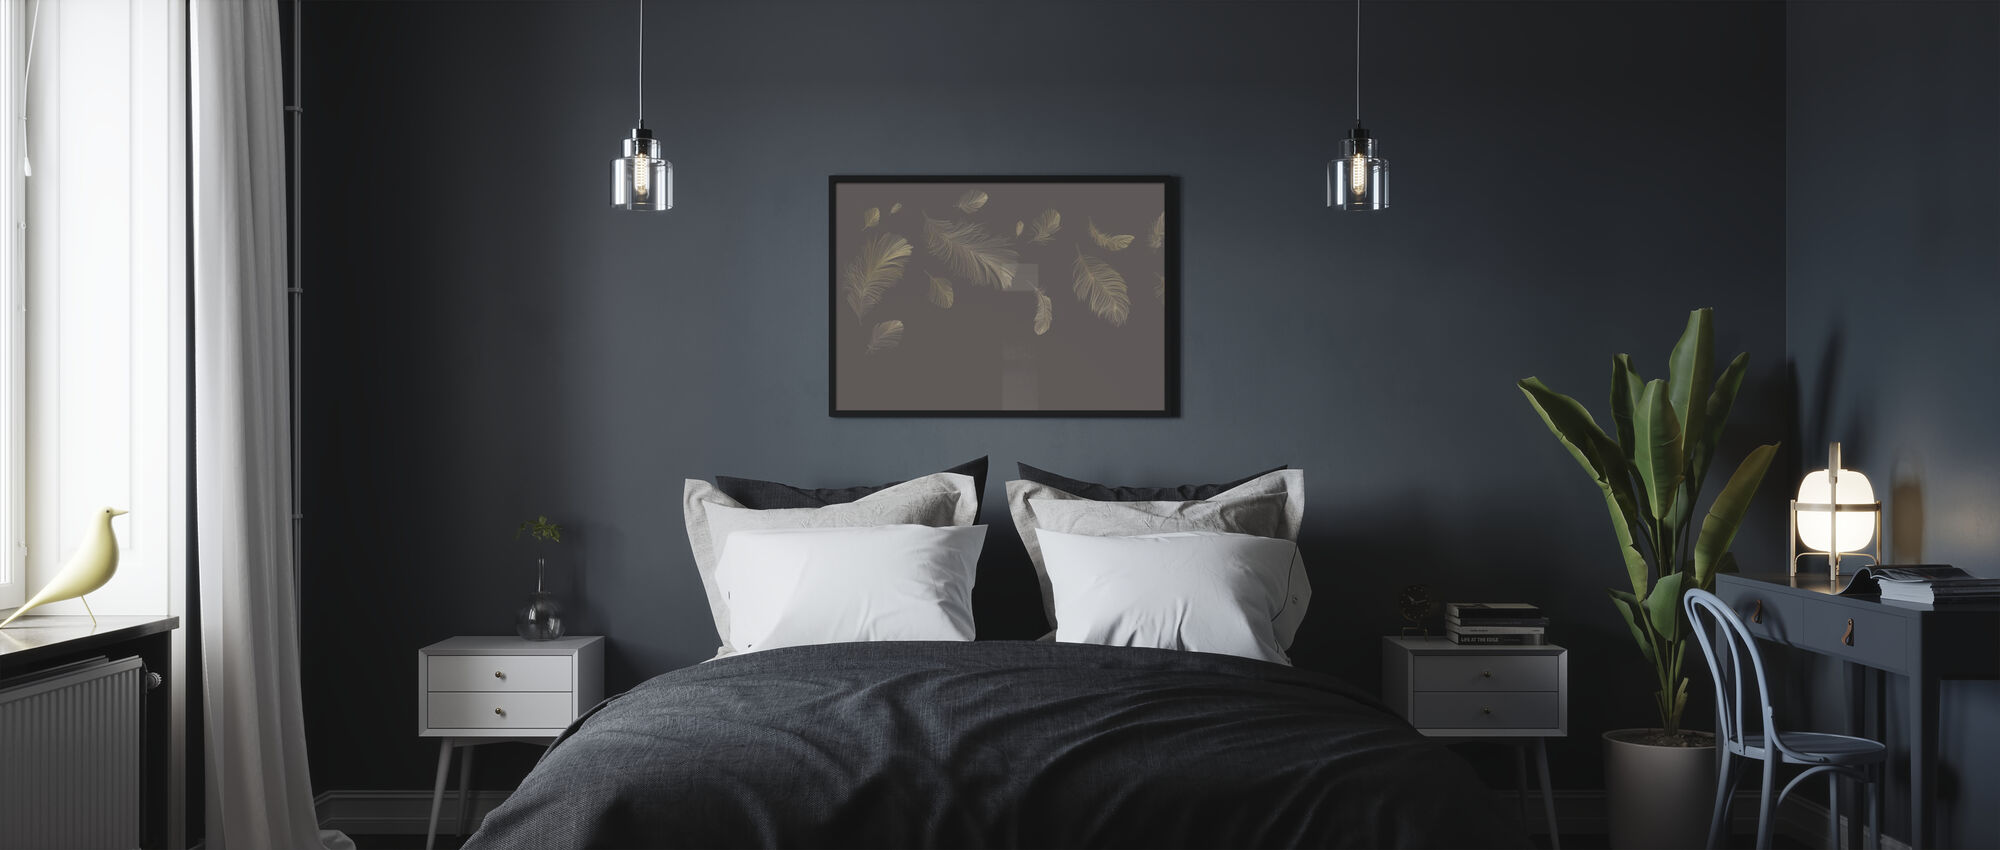 Flying Feathers - Grey - Poster - Bedroom